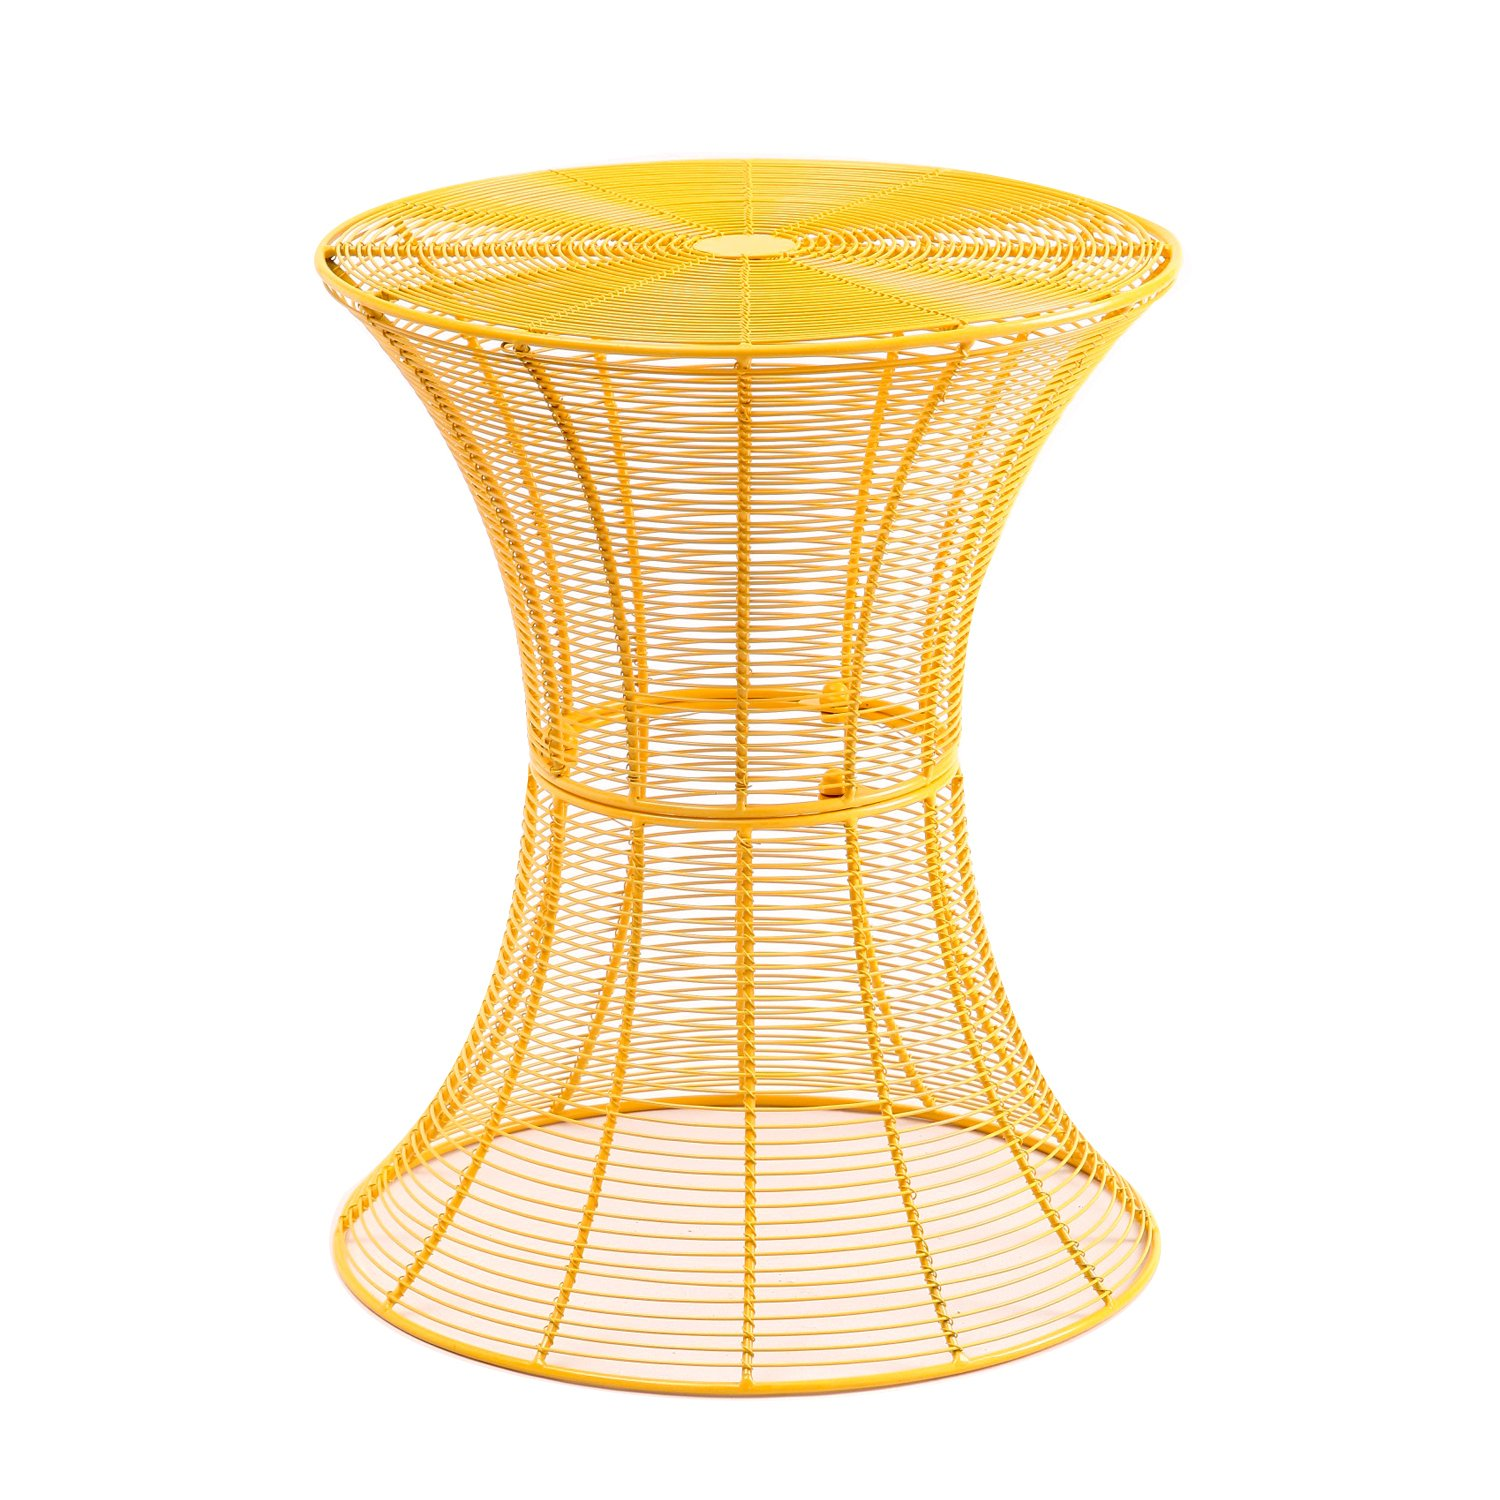 iron round yellow end side table free shipping today adeco hourglass bright outdoor accent ikea lamp shades turquoise coffee oval glass top chairs for balcony diy patio umbrella